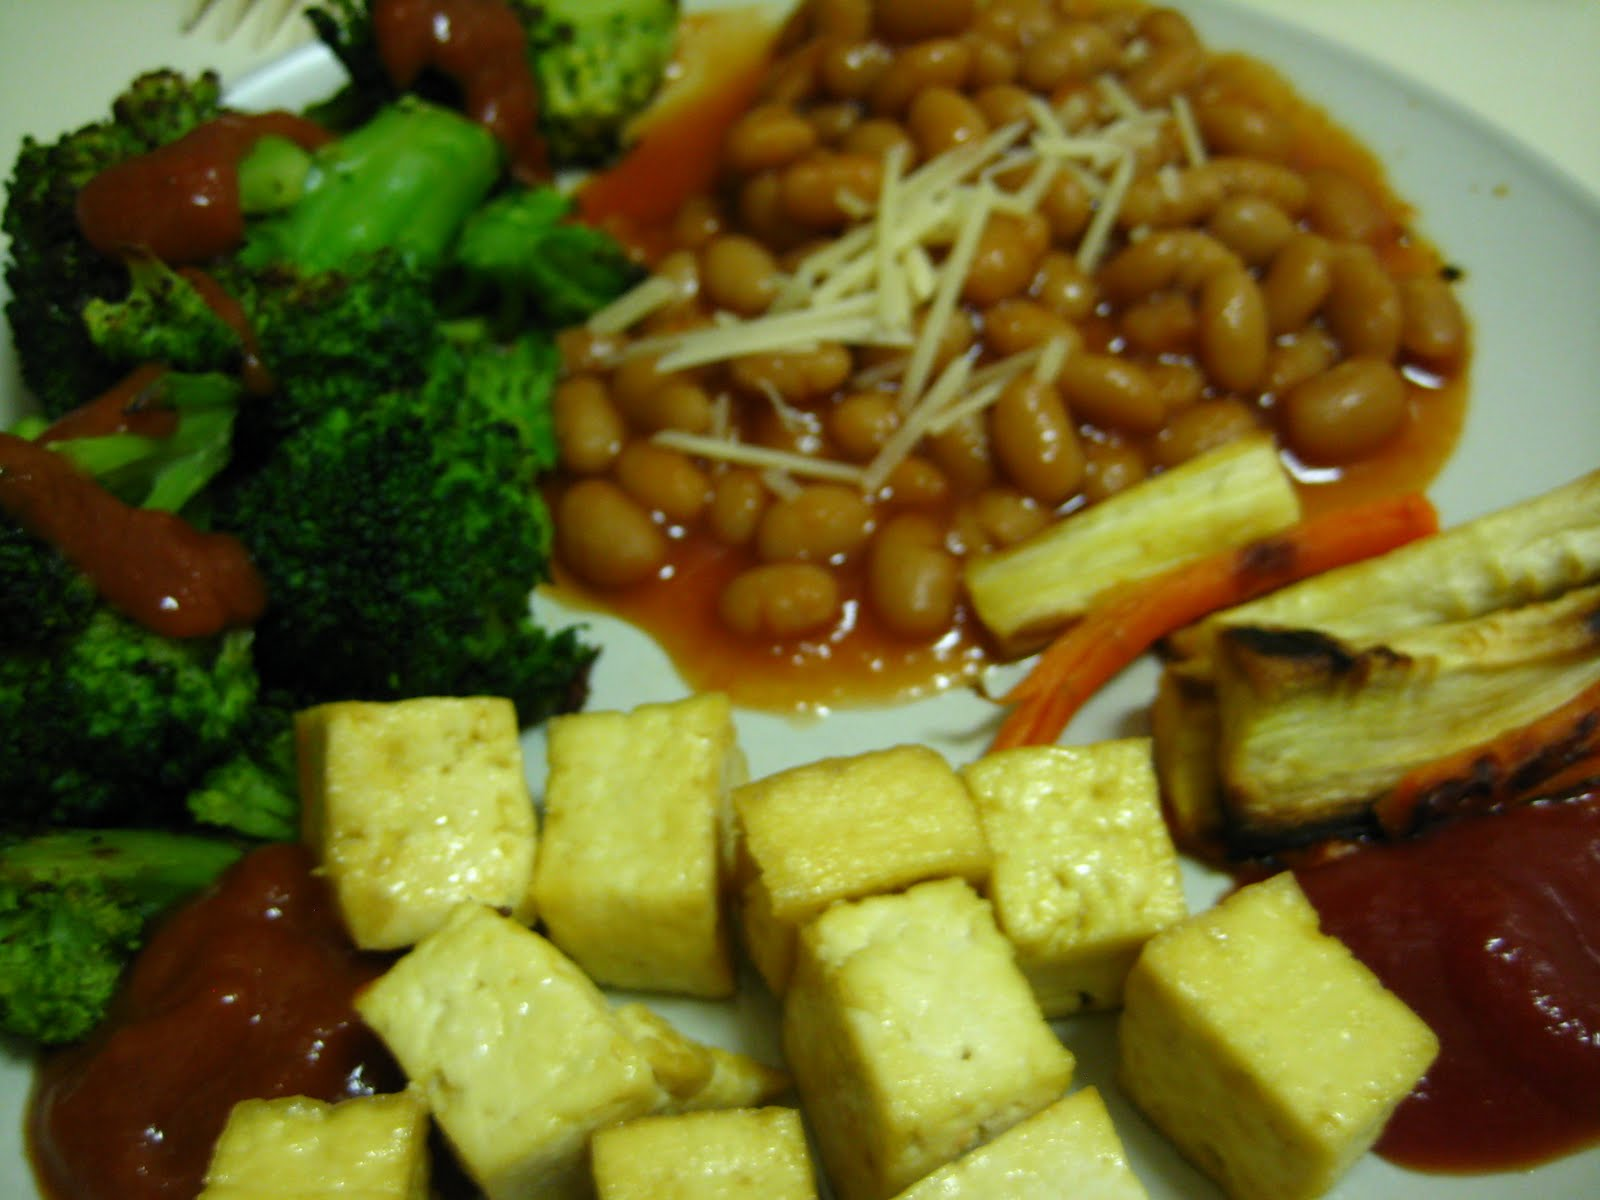 Baked Beans & Pears With Broccoli Salad Recipes — Dishmaps